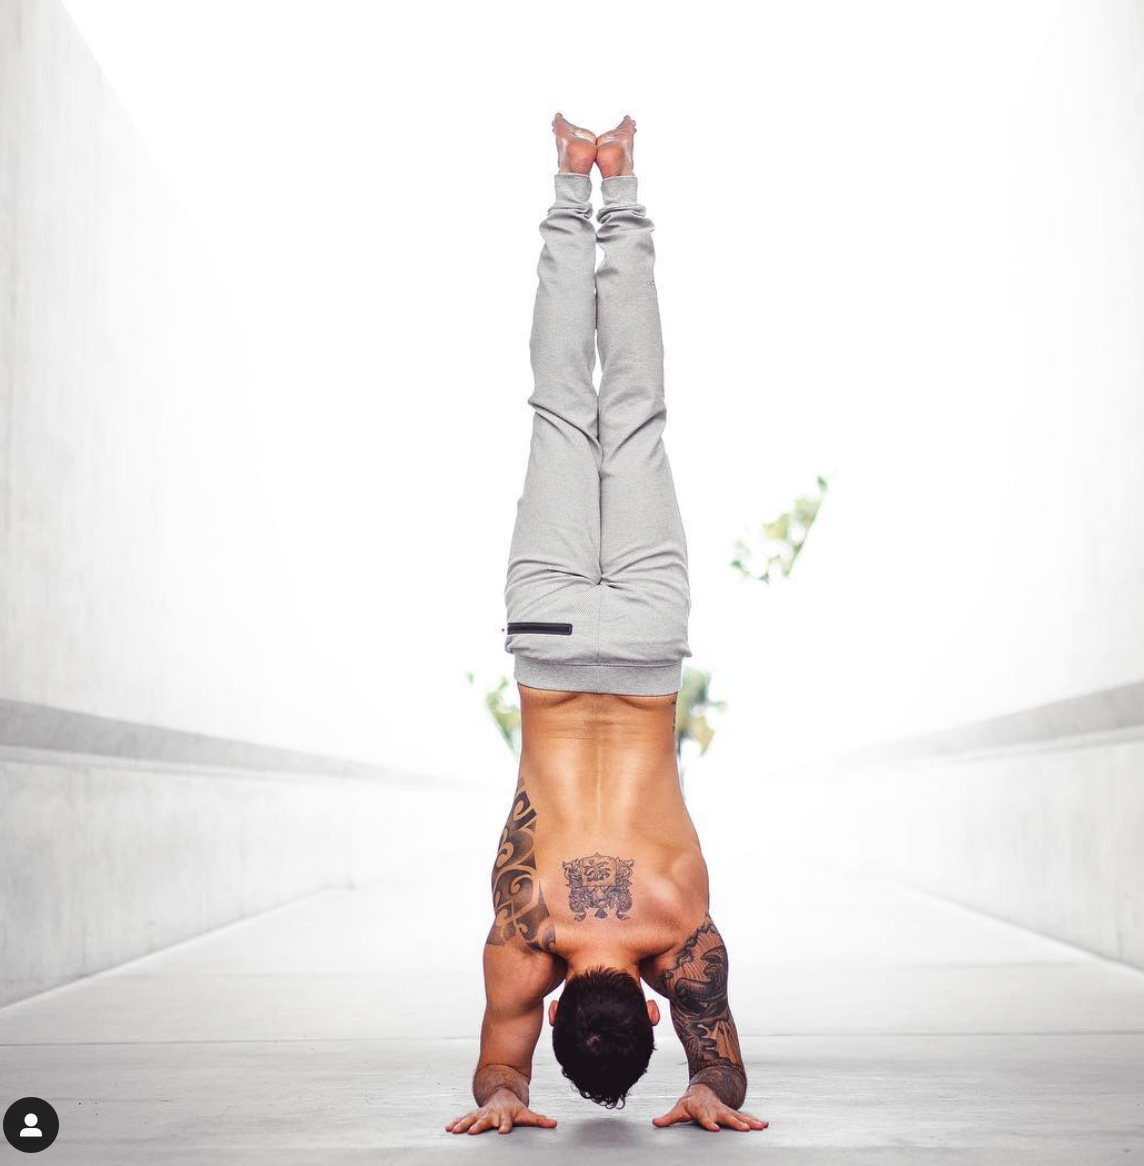 Doing a yoga pose doesn't make you spiritual, how you live your life does.